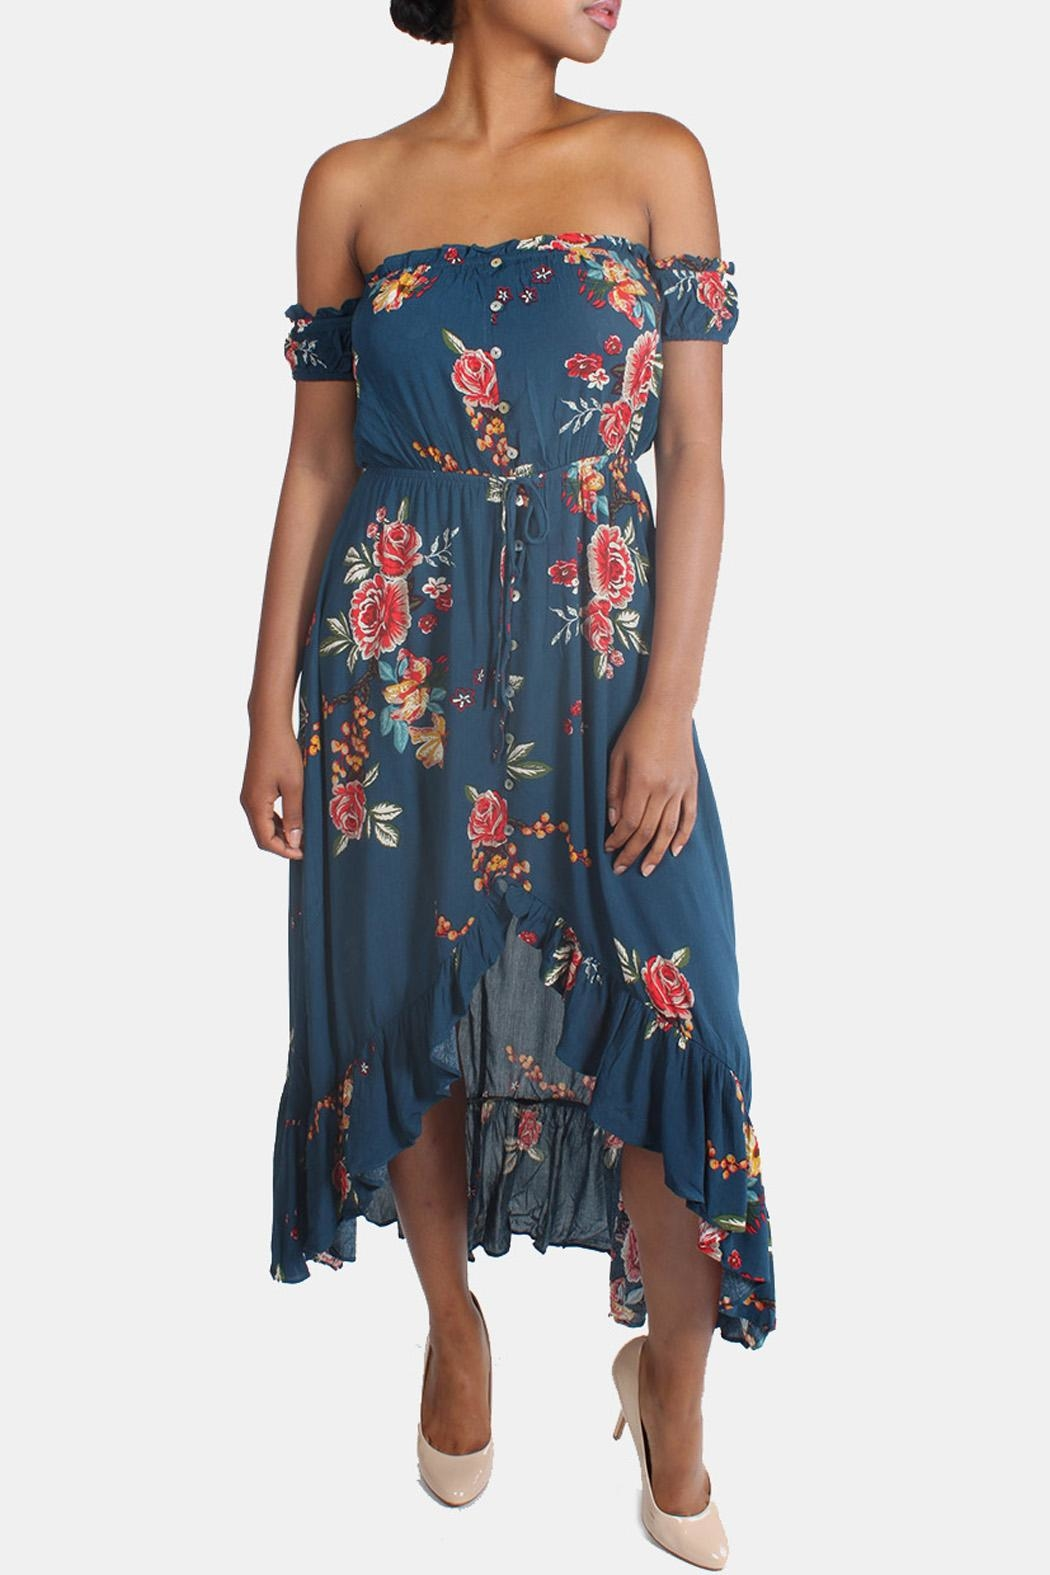 Illa Illa Blue Off-The-Shoulder Floral-Dress - Main Image